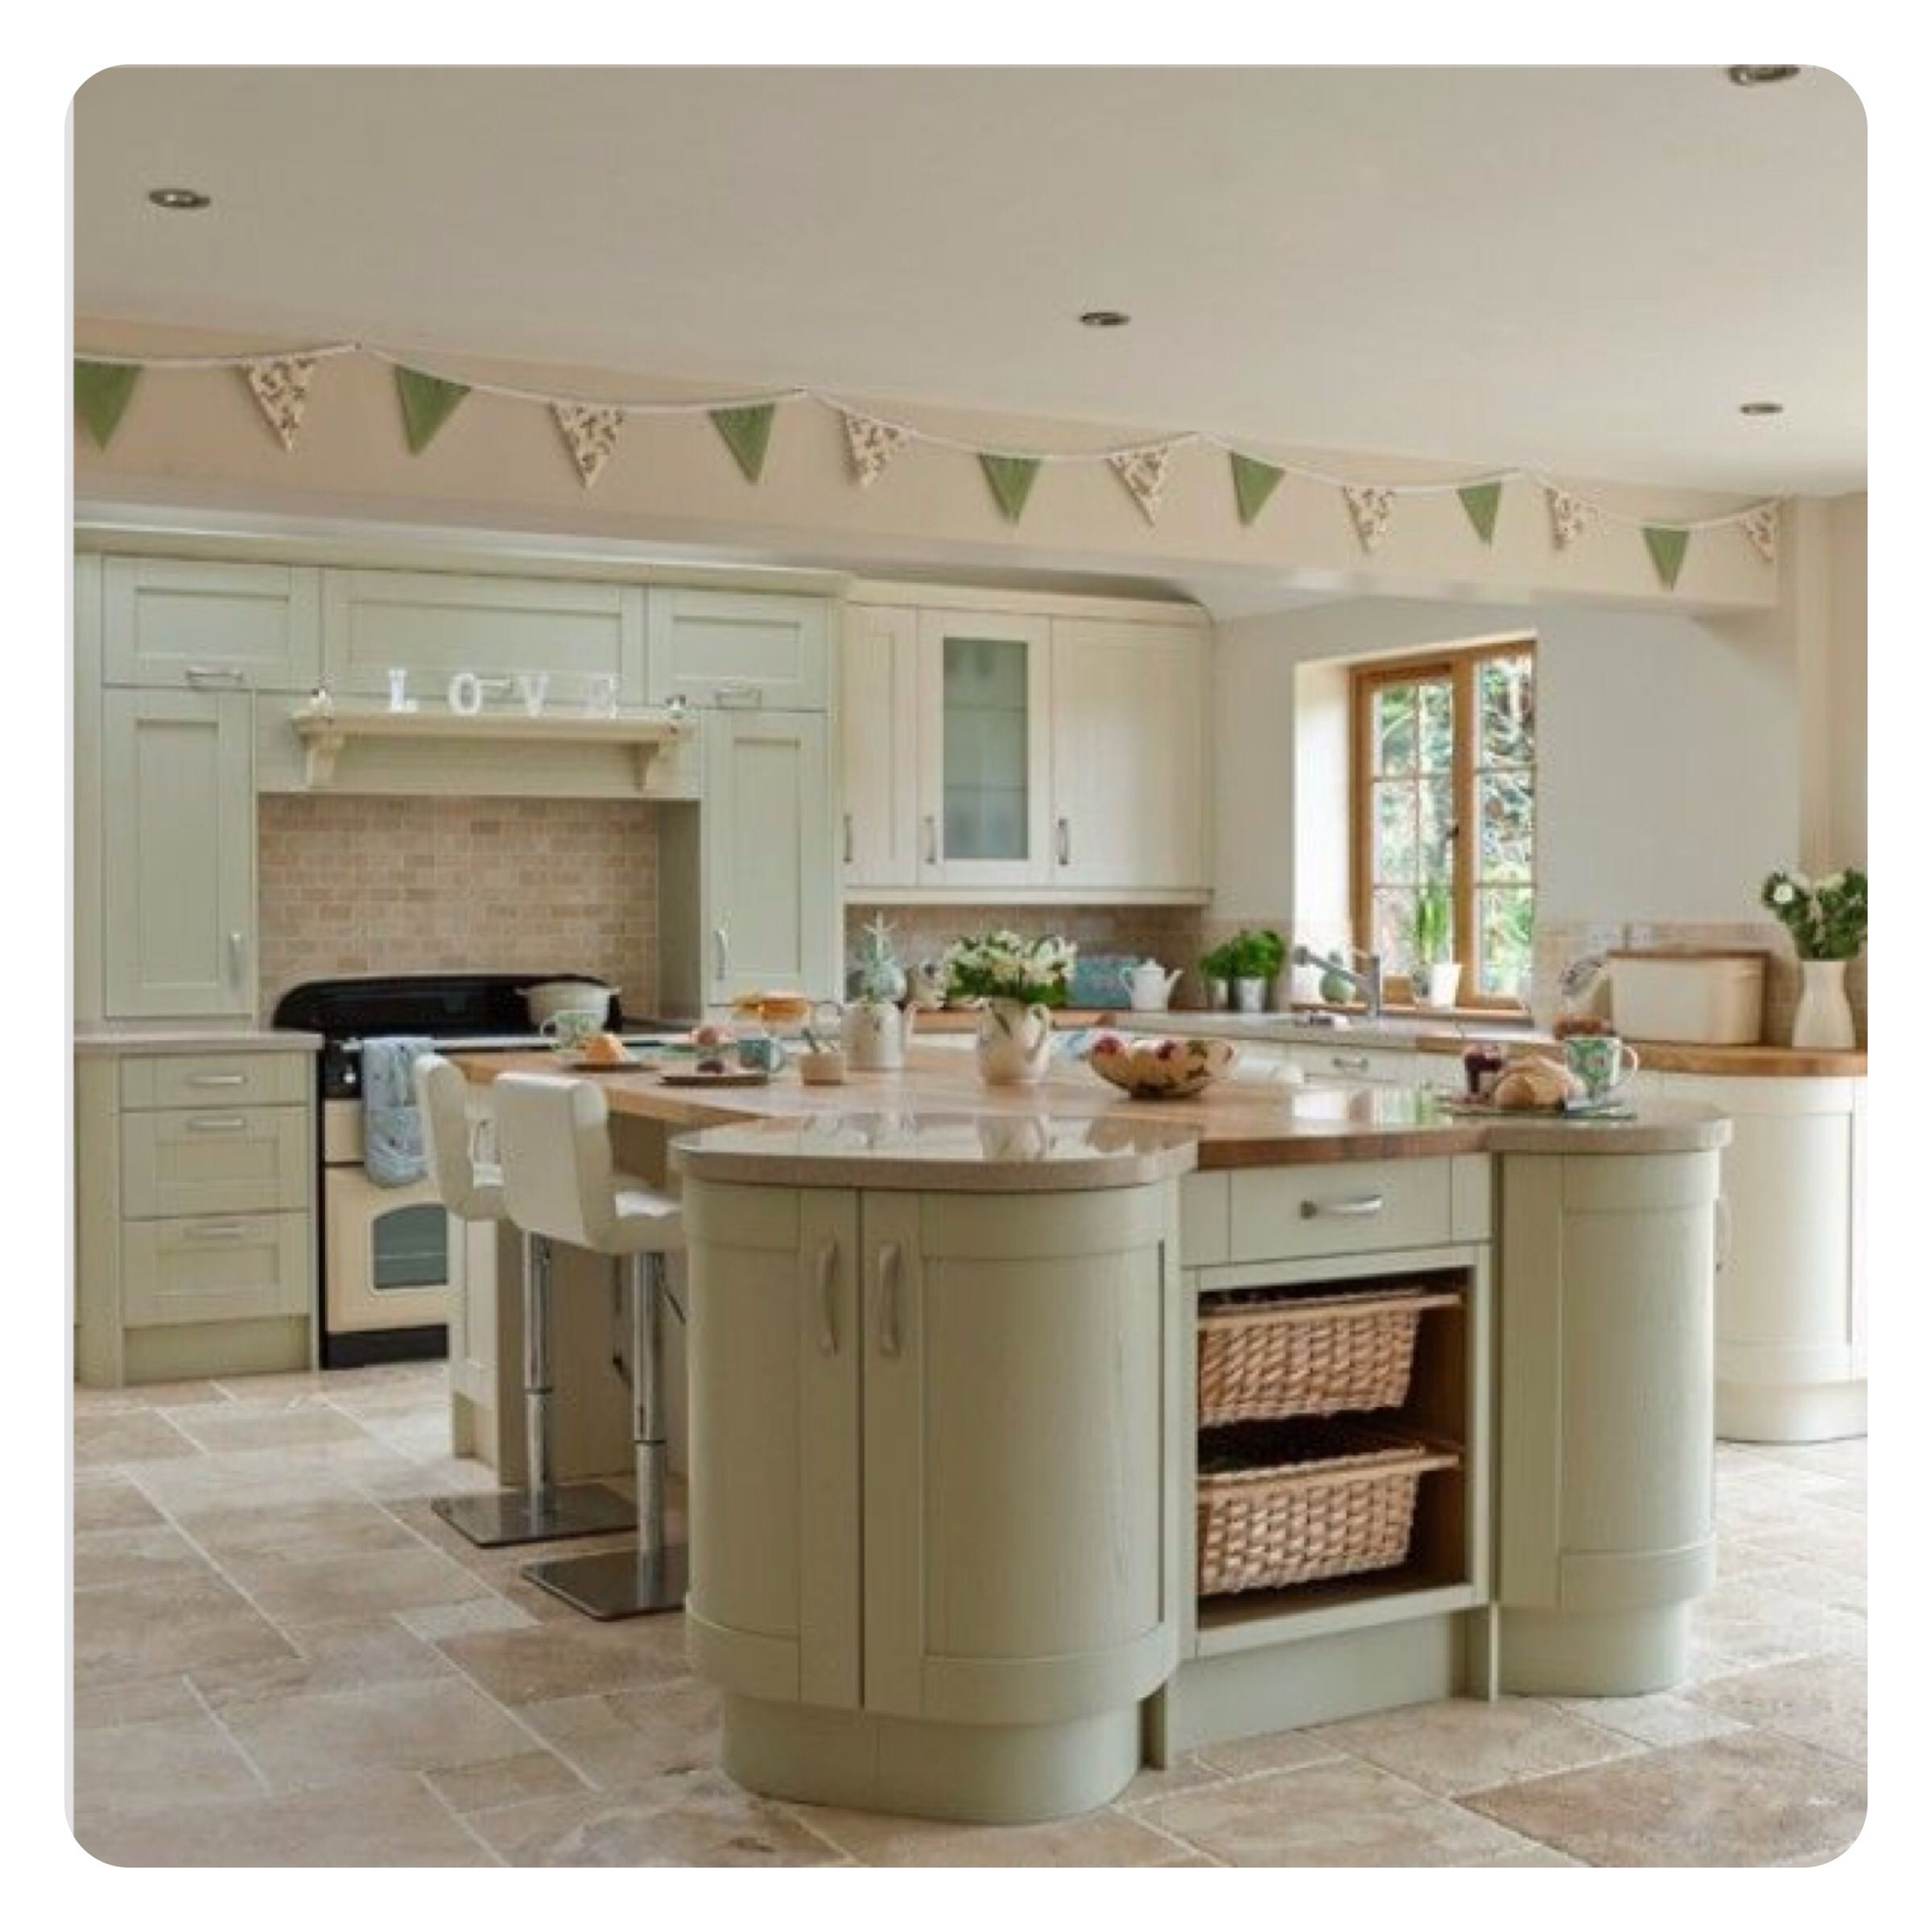 Cream and sage green kitchen I designed and ended up in a magazine